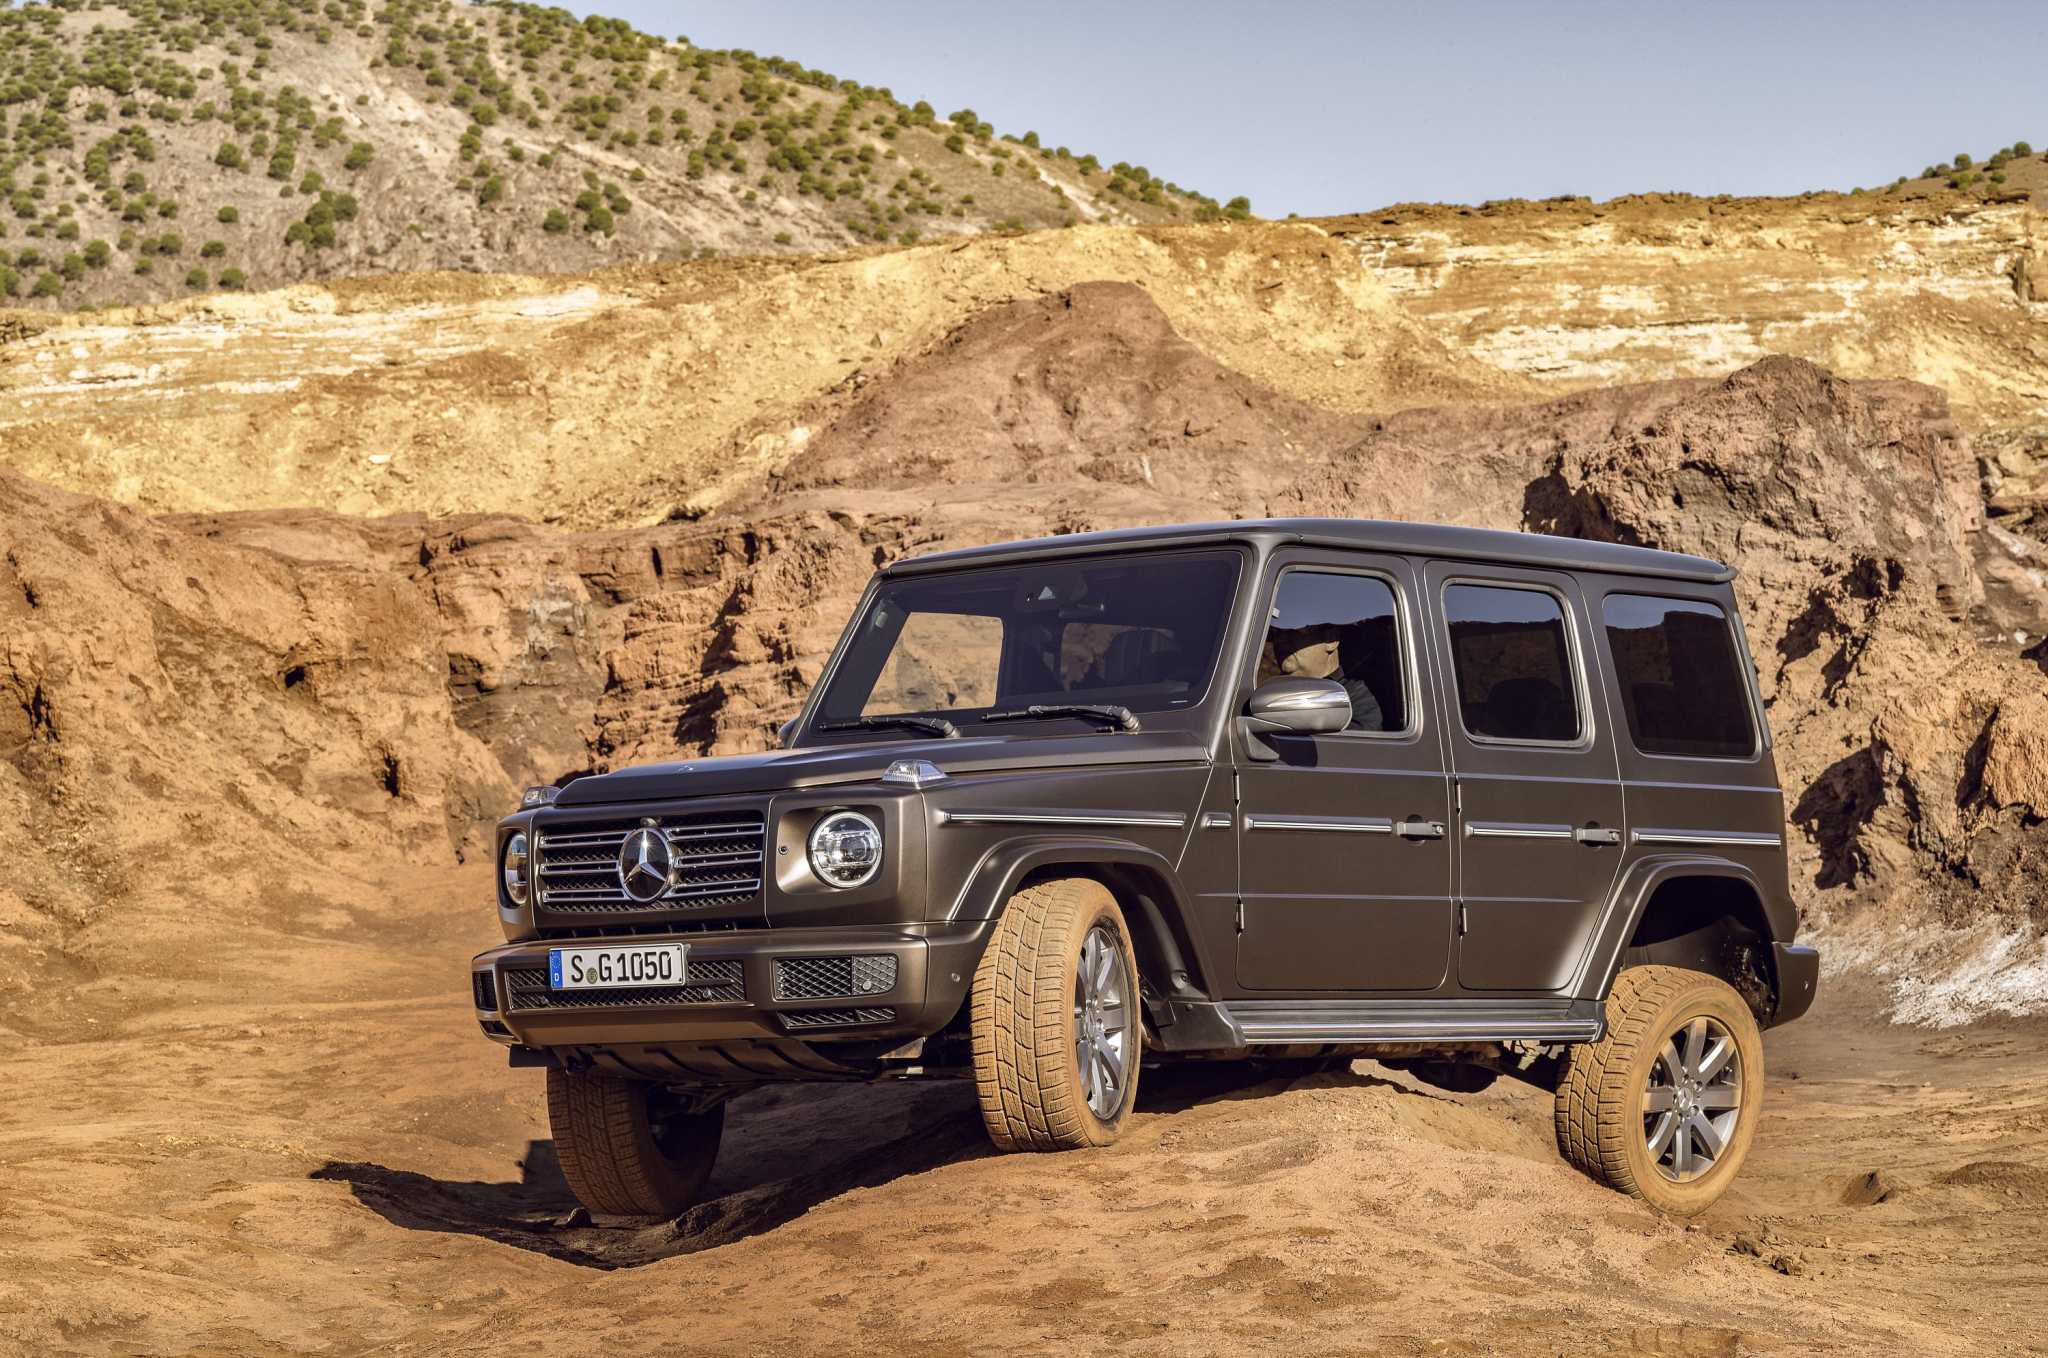 Mercedes-benz G550: From Spartan to posh